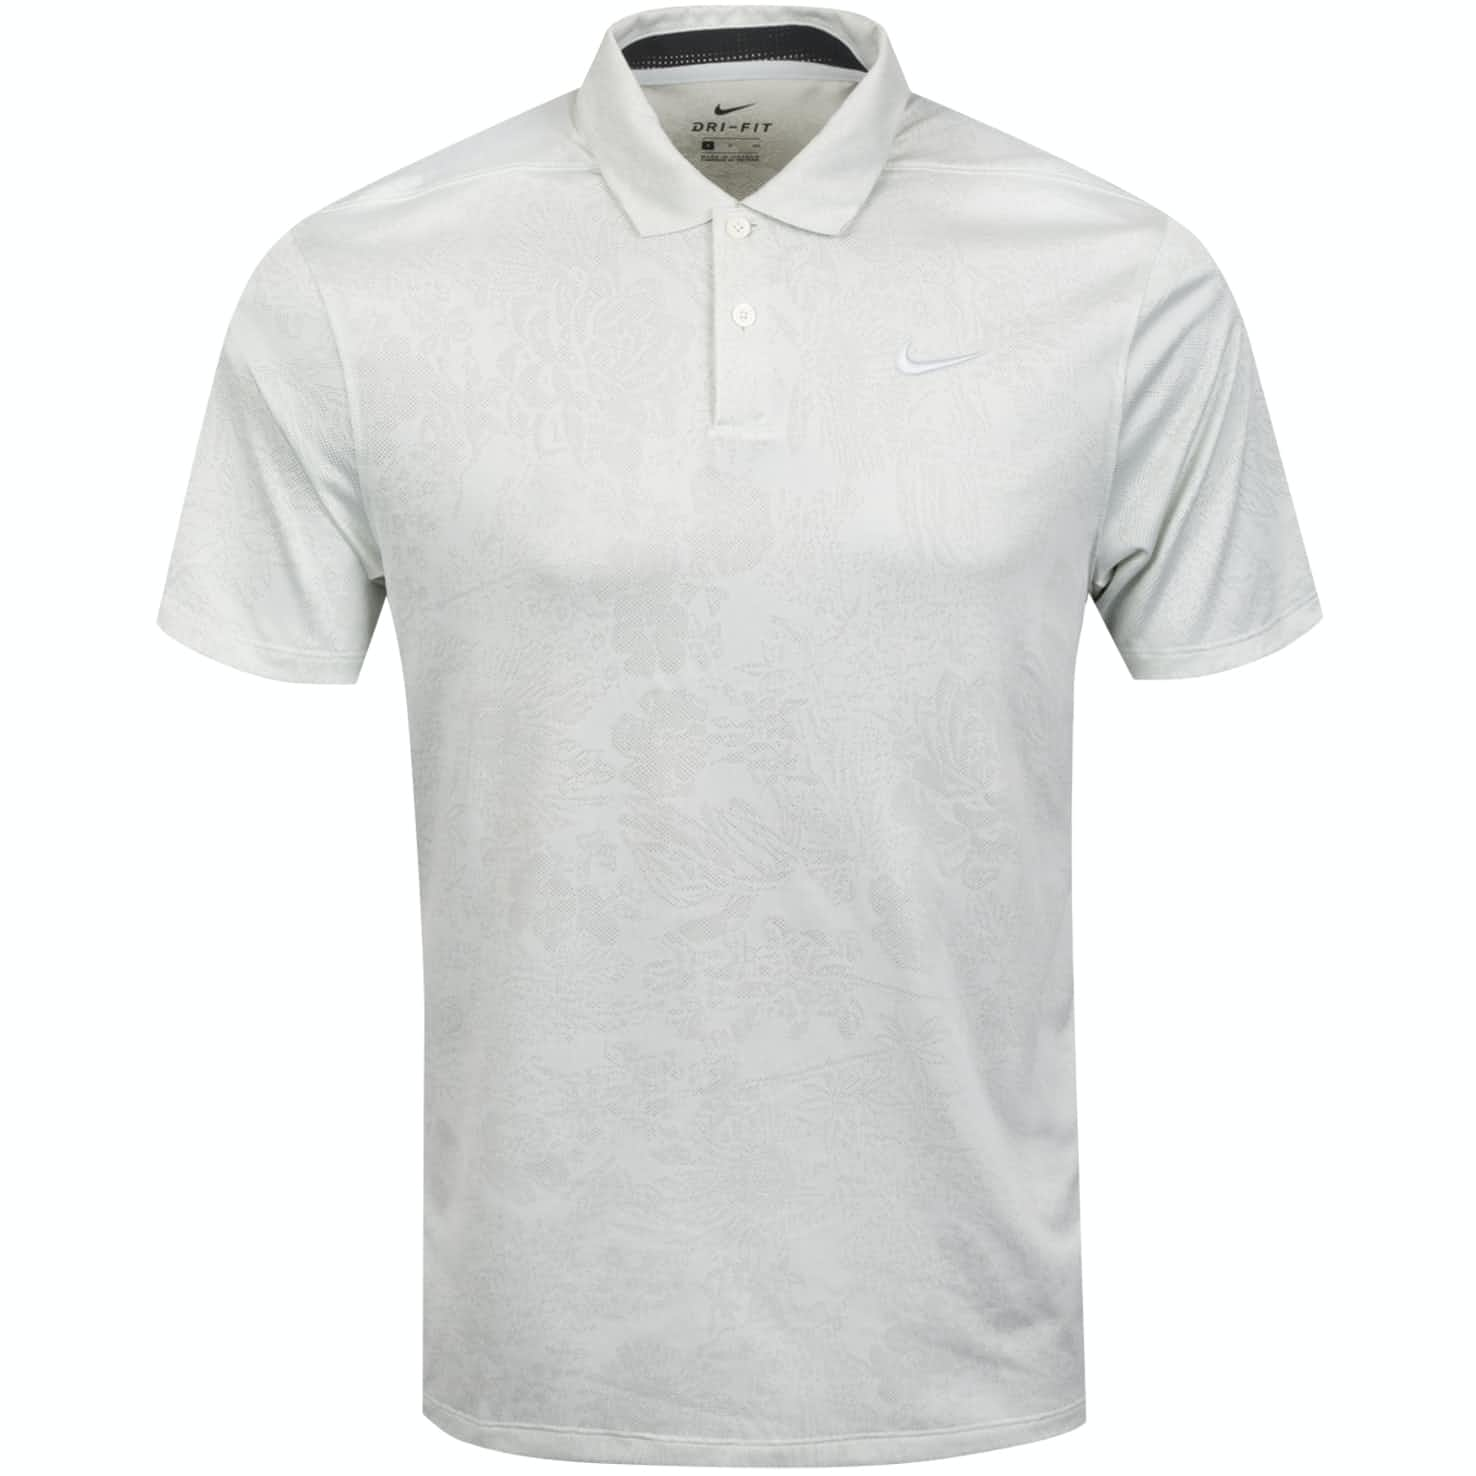 Breathe Vapor Jacquard Print Polo White/Pure Platinum - AW19